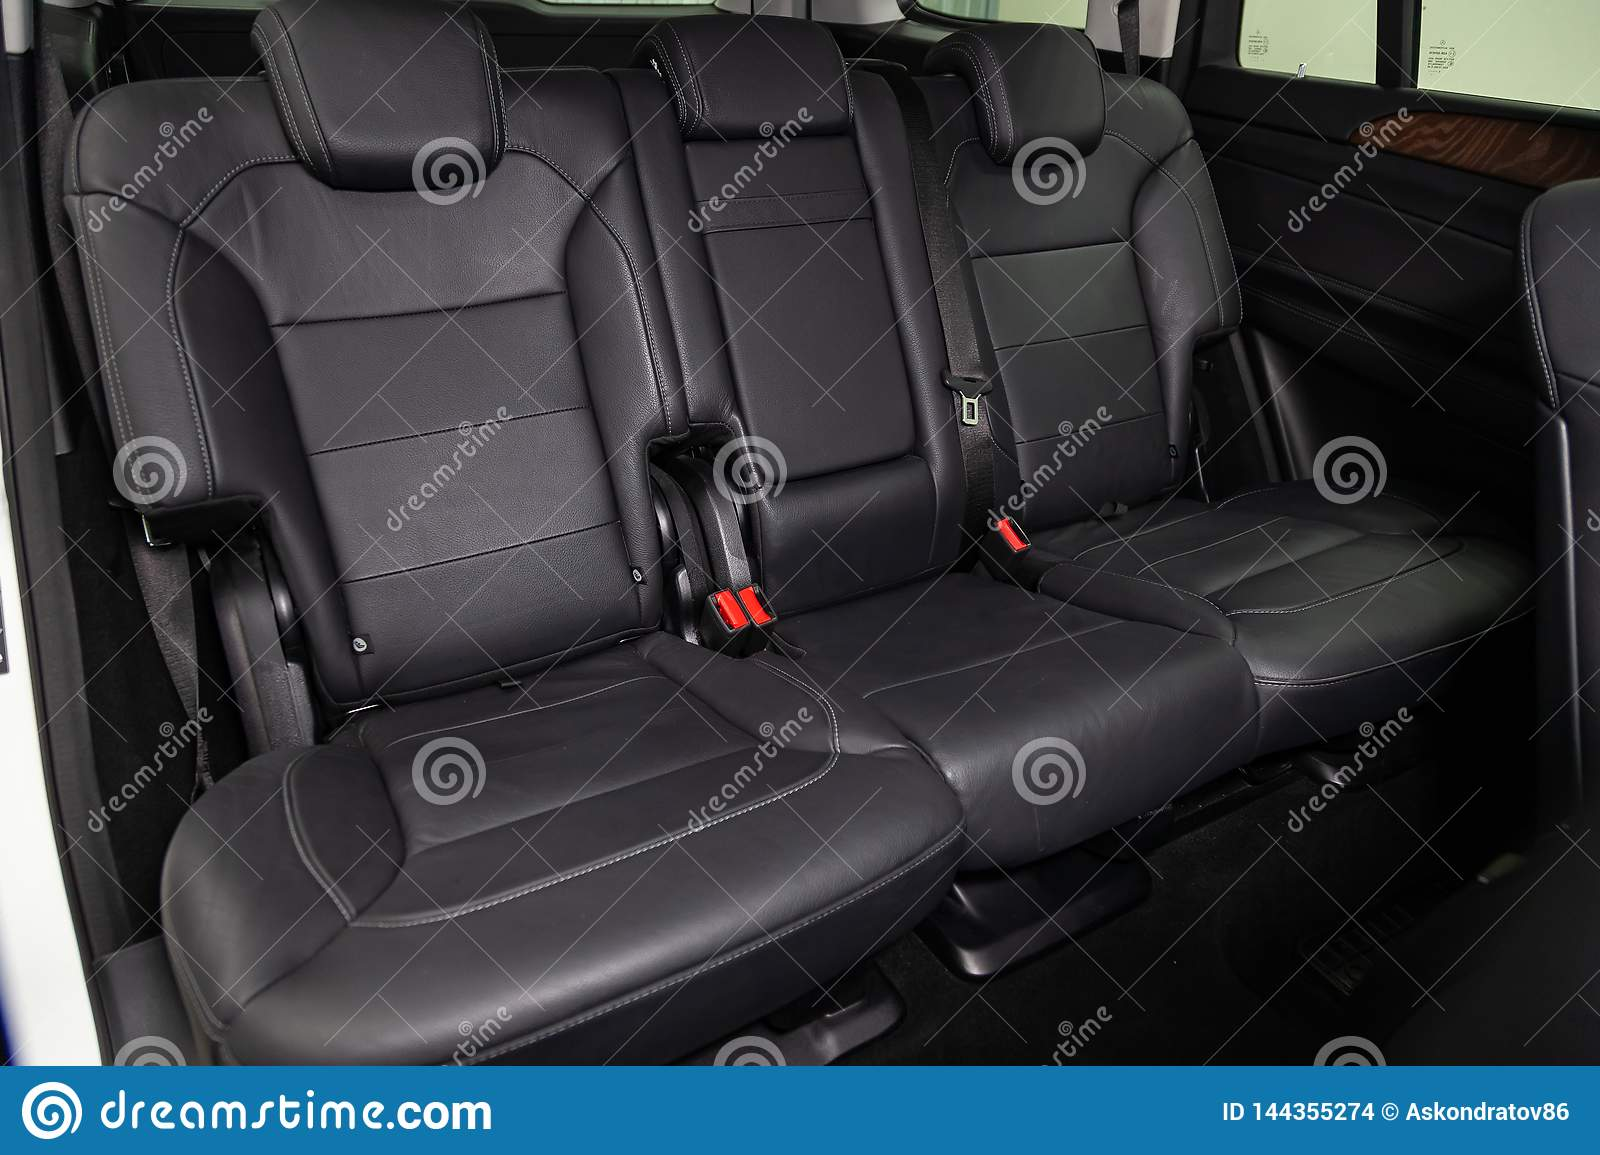 Mercedes Box Suv >> Interior View With Rear Seats Of Luxury Very Expensive New